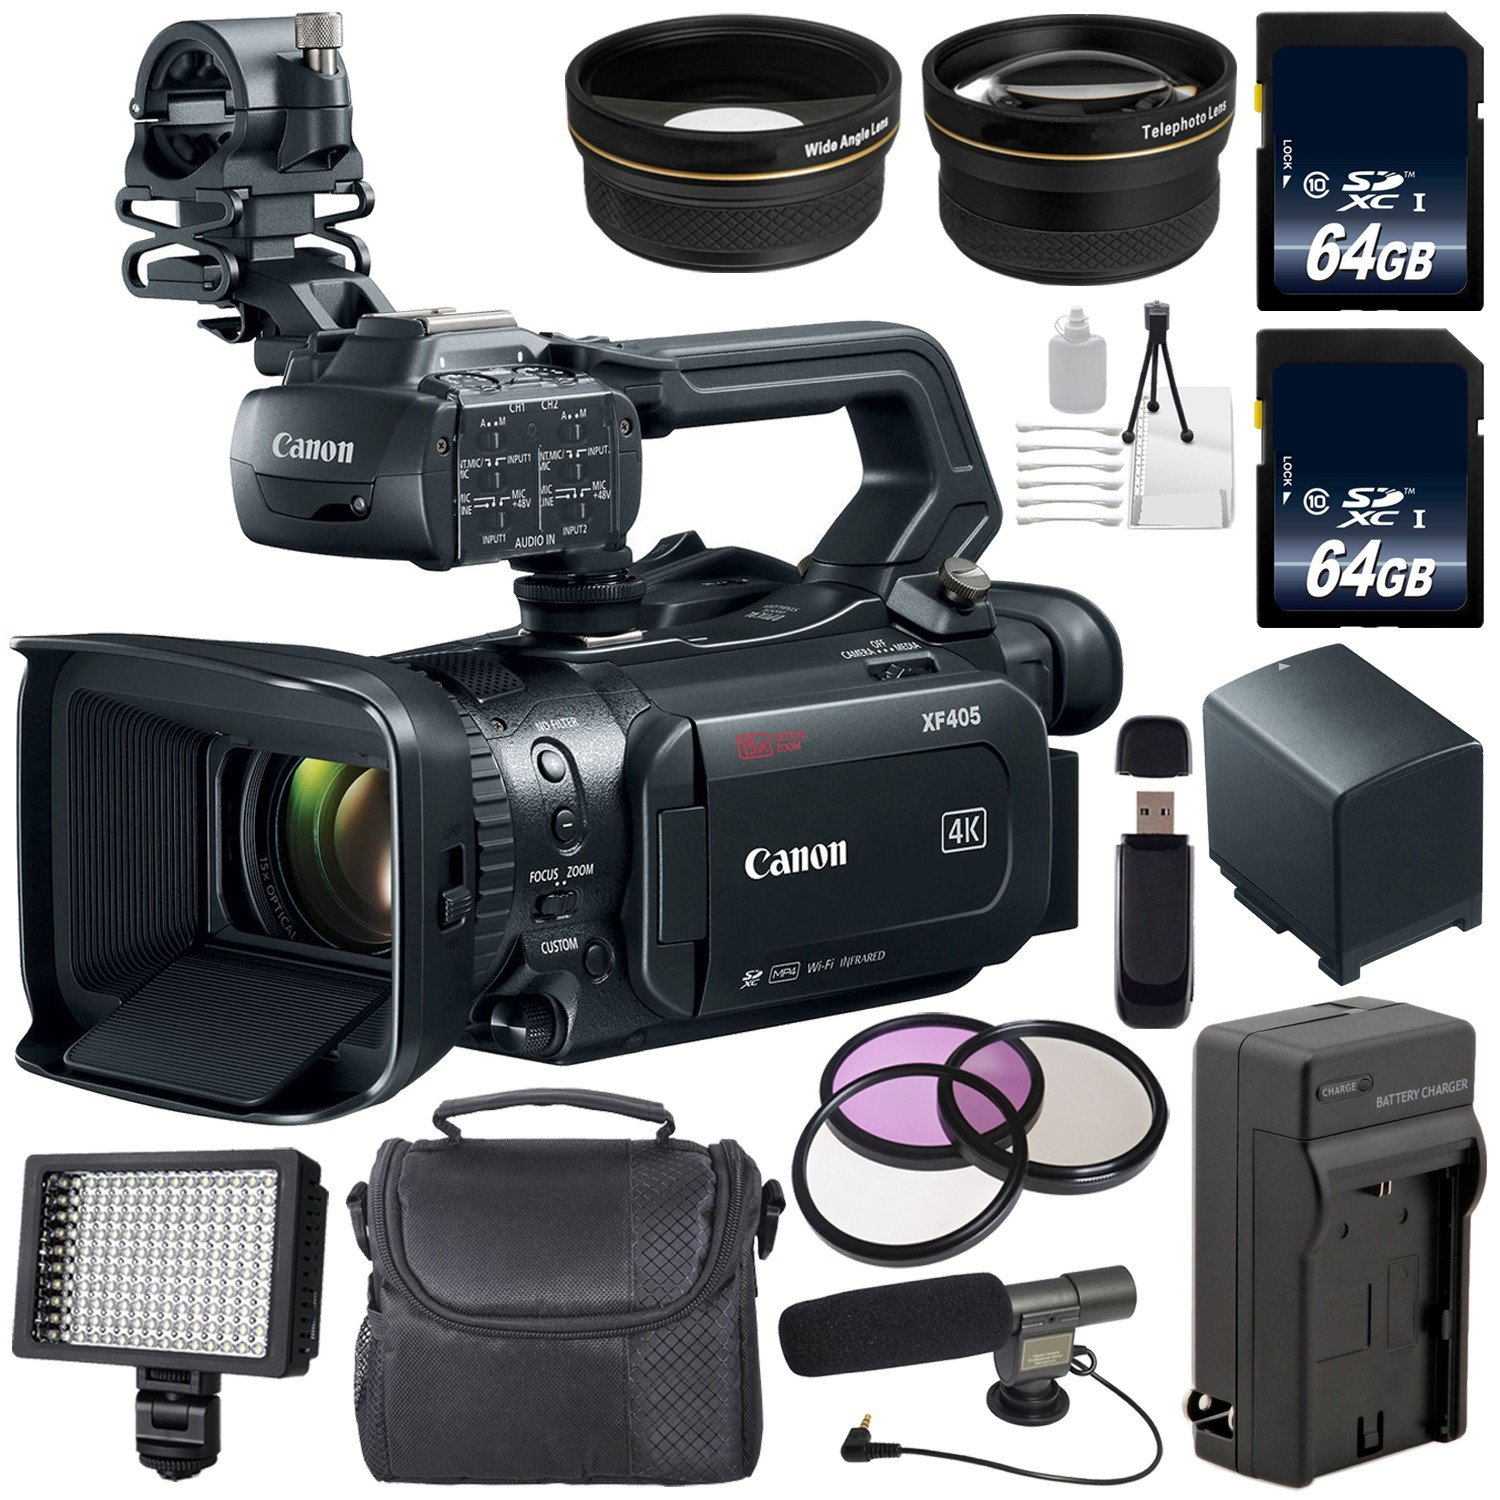 with Extra Battery 3667C002 Tripod LED Light Padded Case Canon Vixia HF G50 UHD 4K Camcorder Black UV Filter 64GB Memory Card and More Starter Bundle